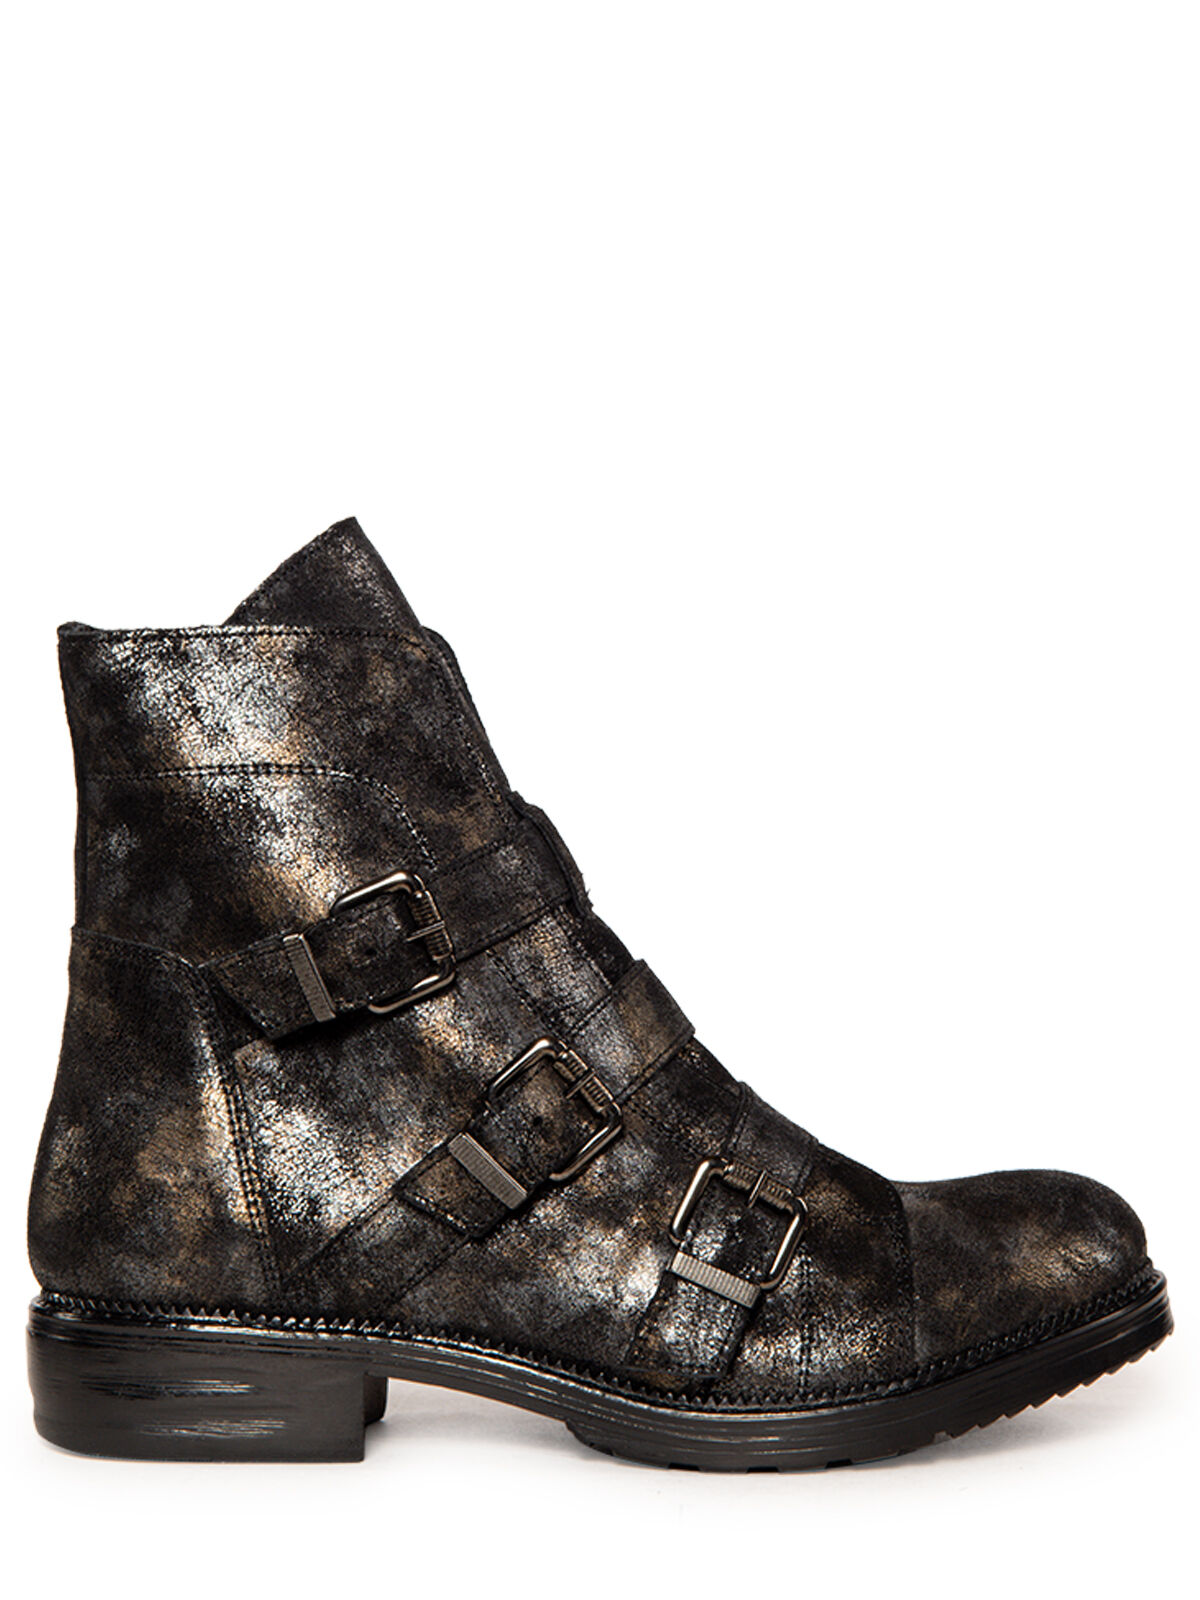 Otto Kern Boots drei Riegel silberschwarz | Dress for less